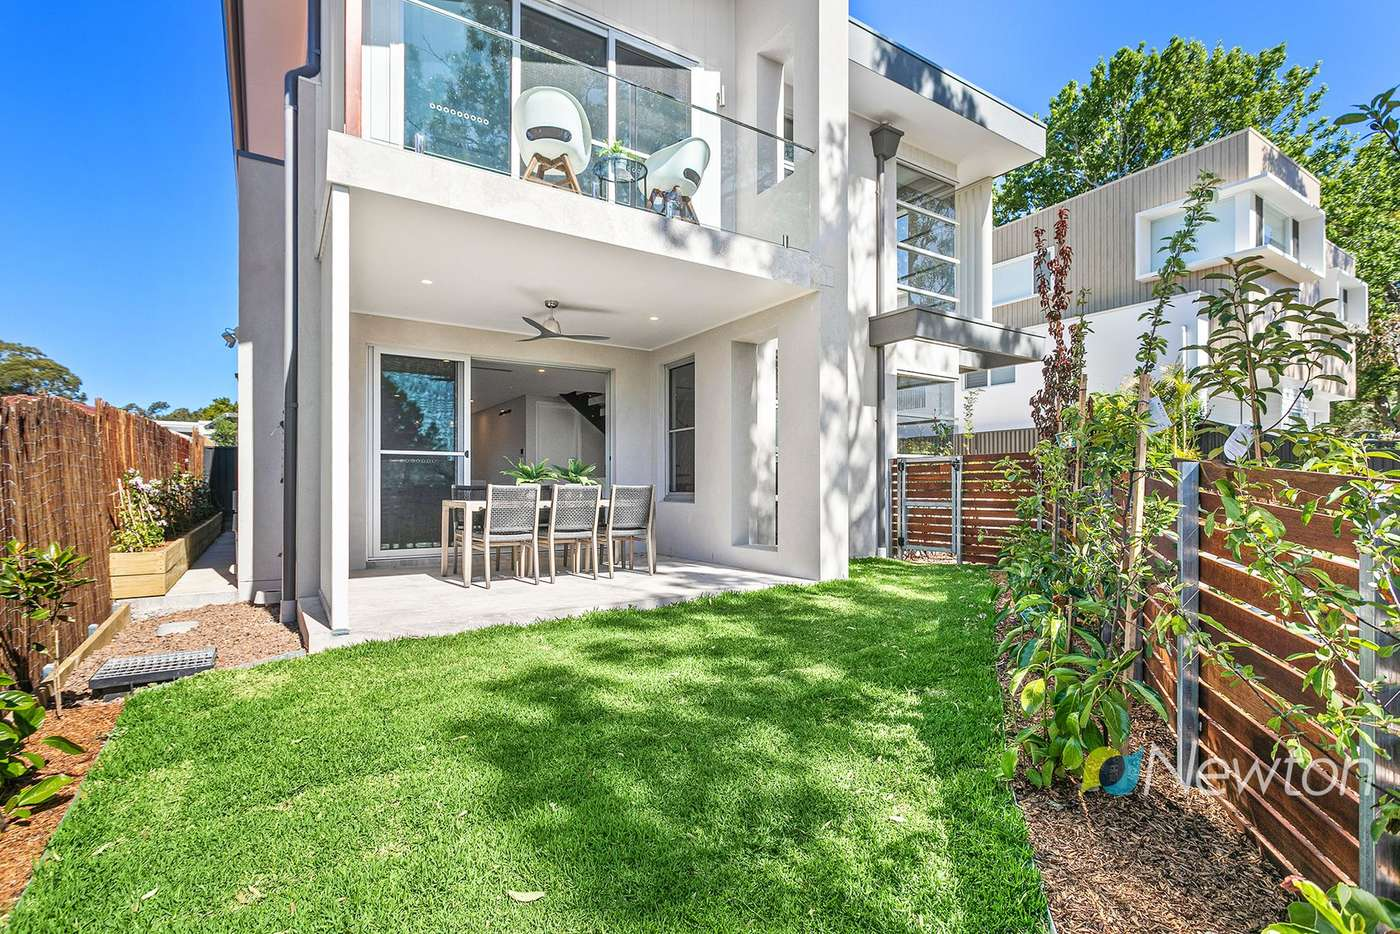 Main view of Homely townhouse listing, 1/26 Dolans Road, Woolooware NSW 2230